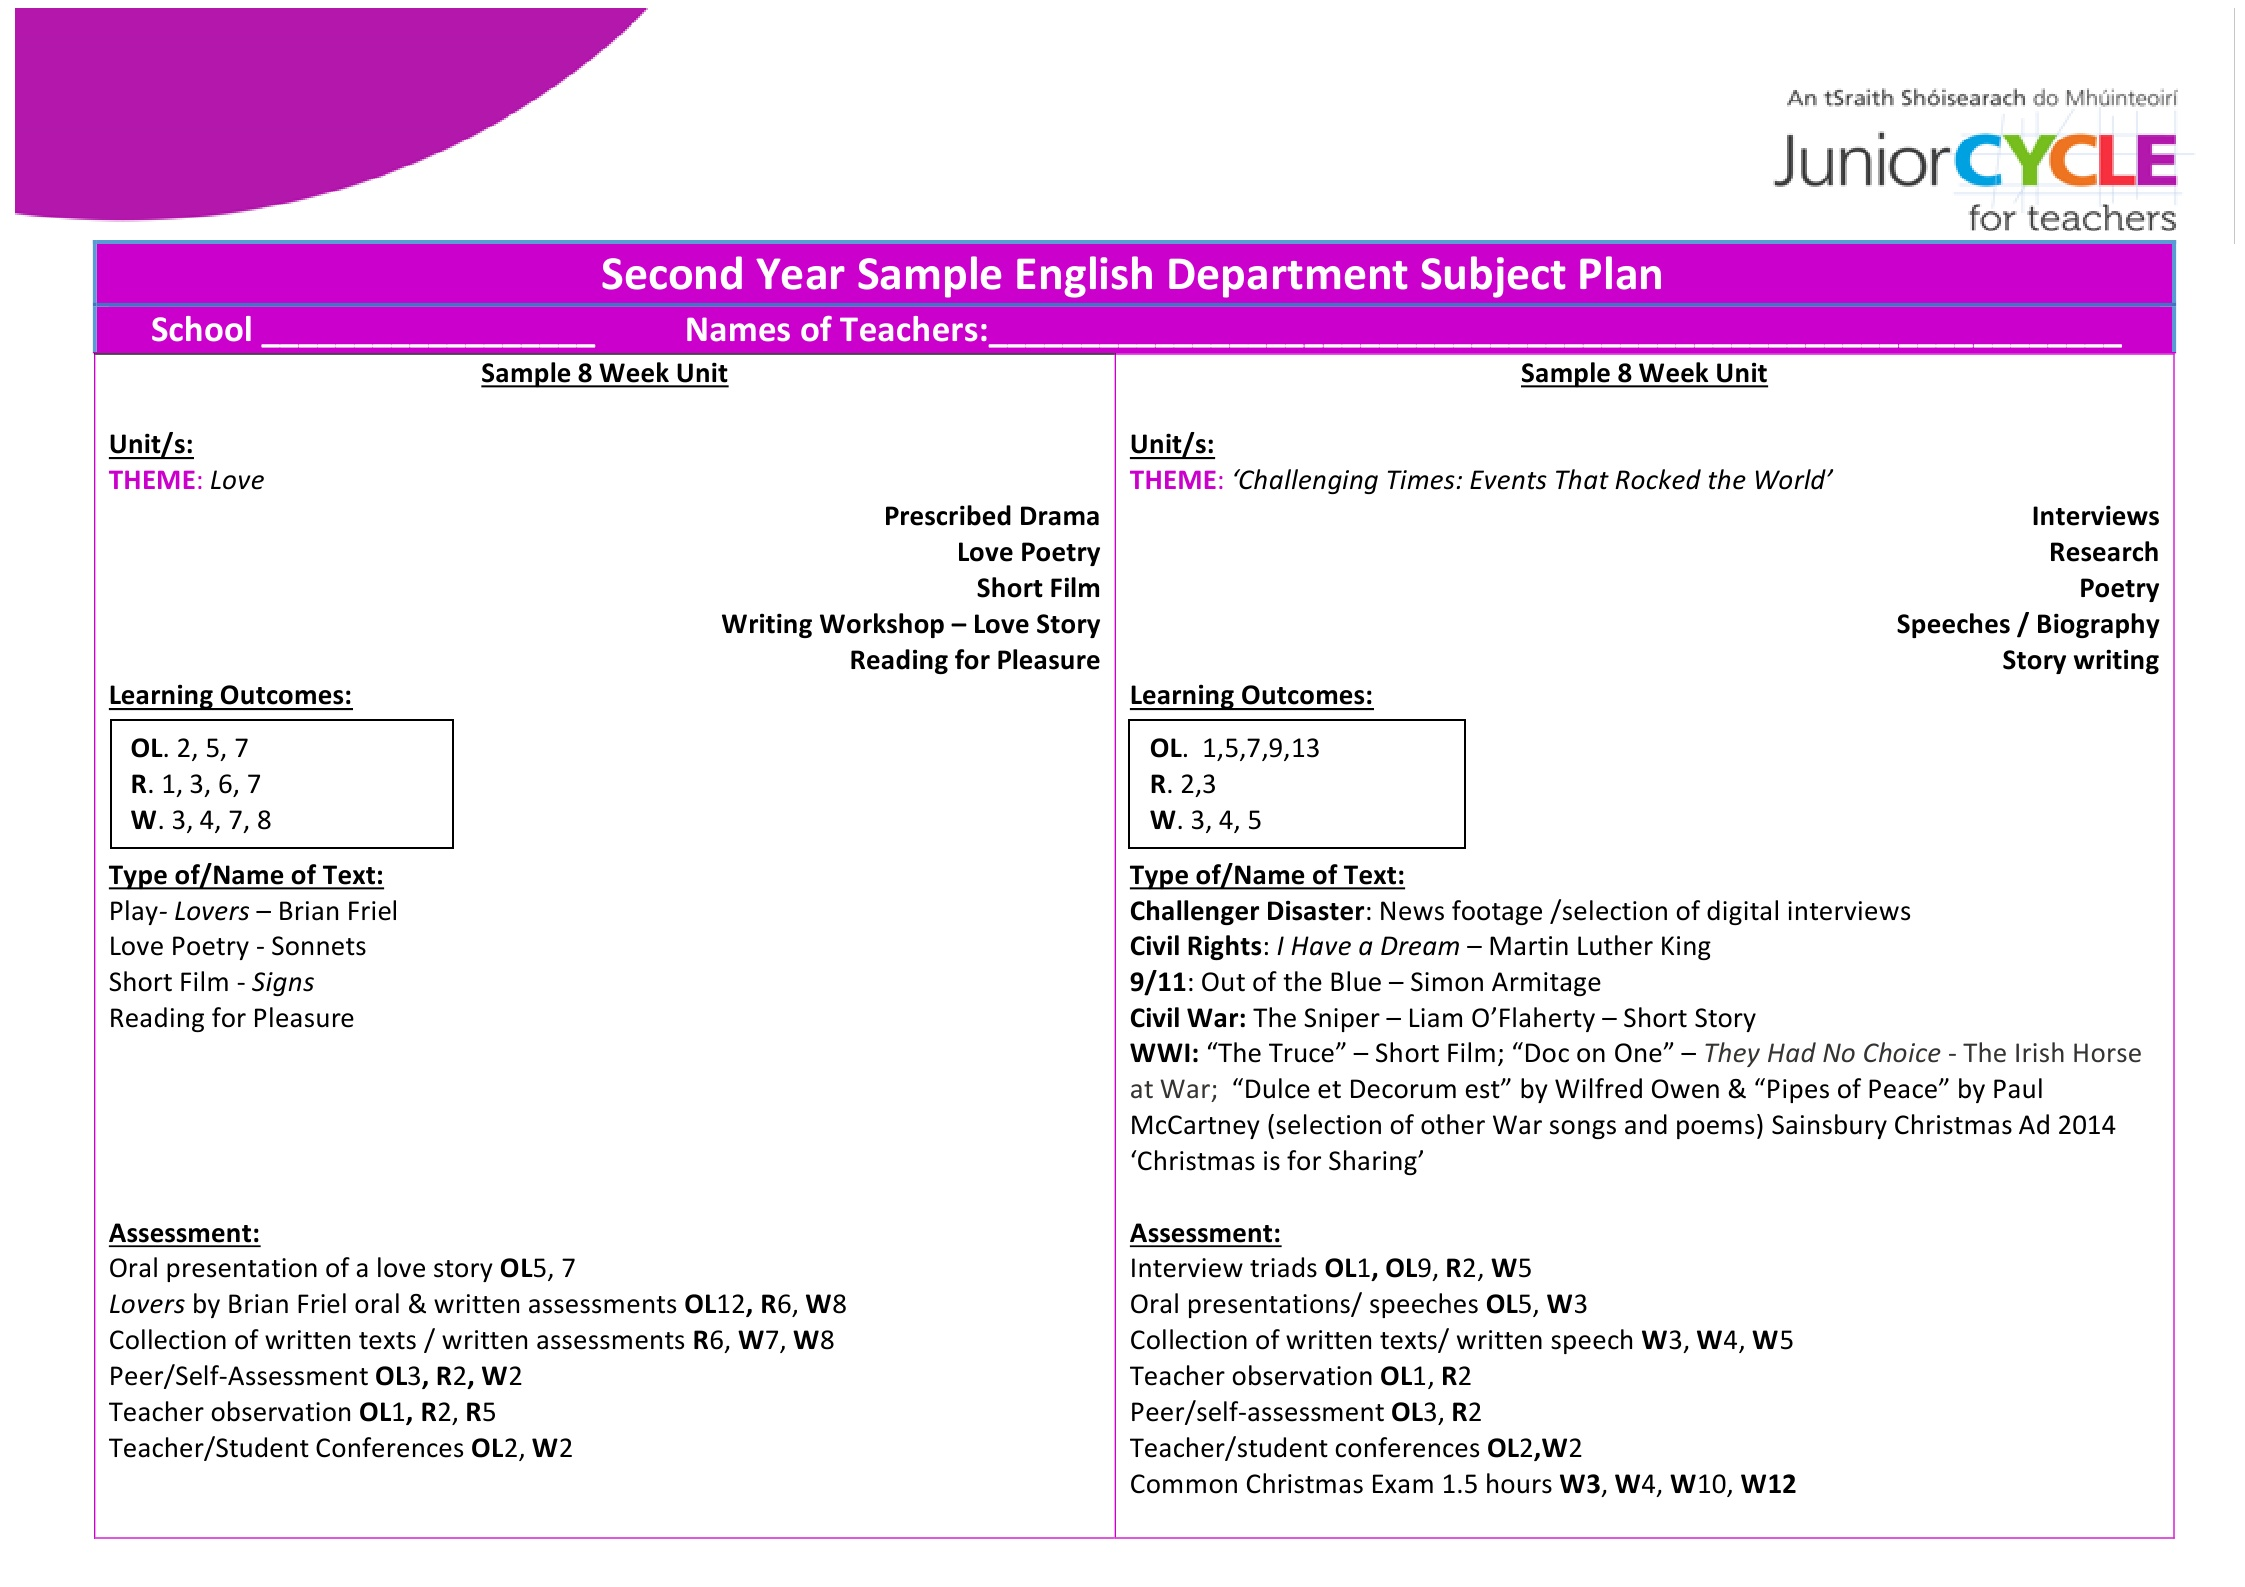 Second Year Sample English Department Subject Plan 2016